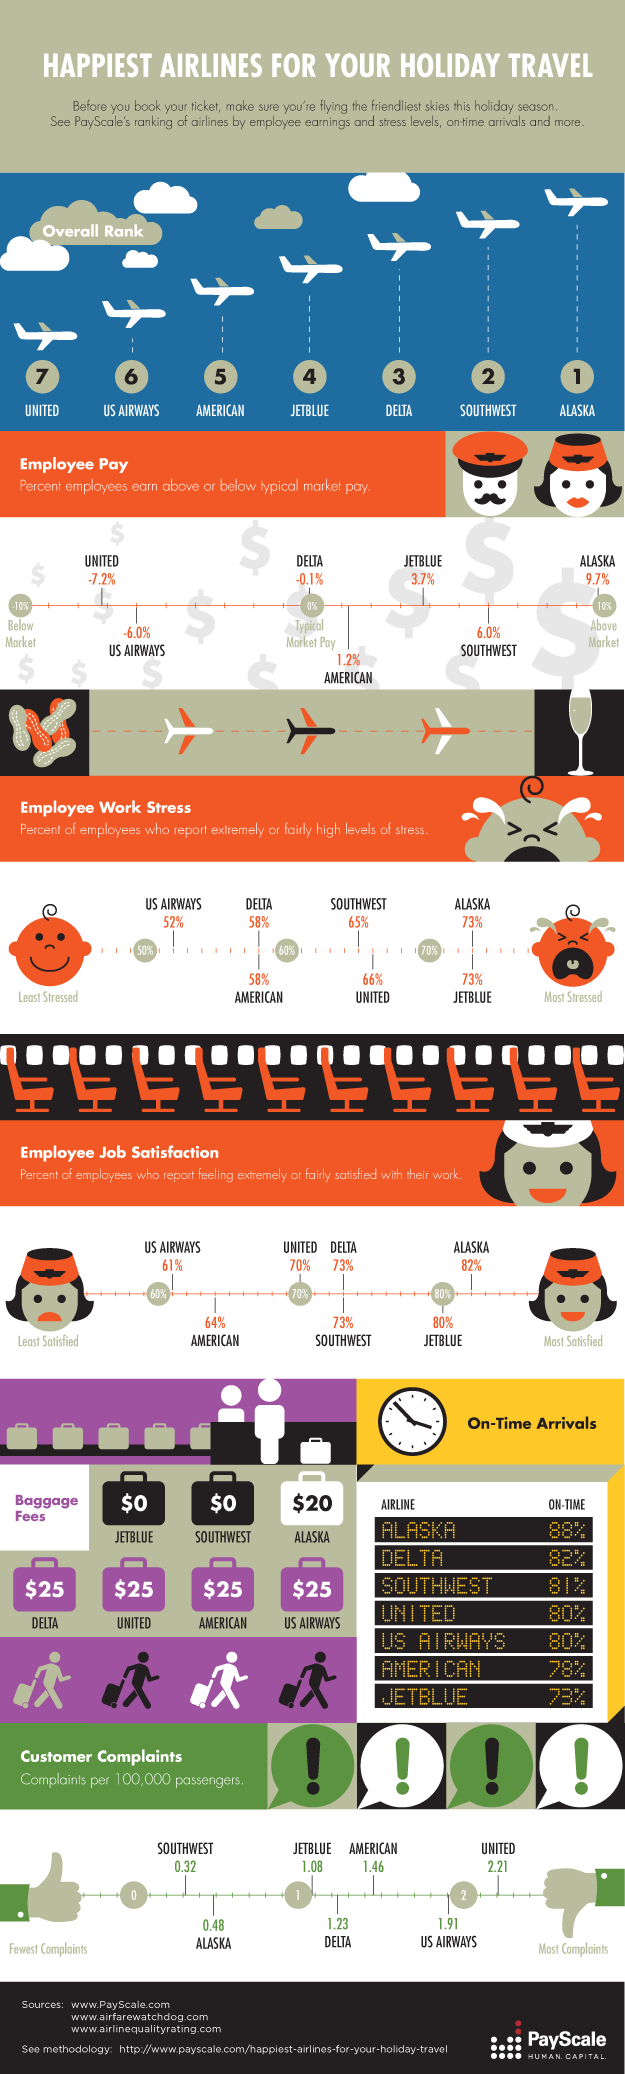 Airlines Infographic